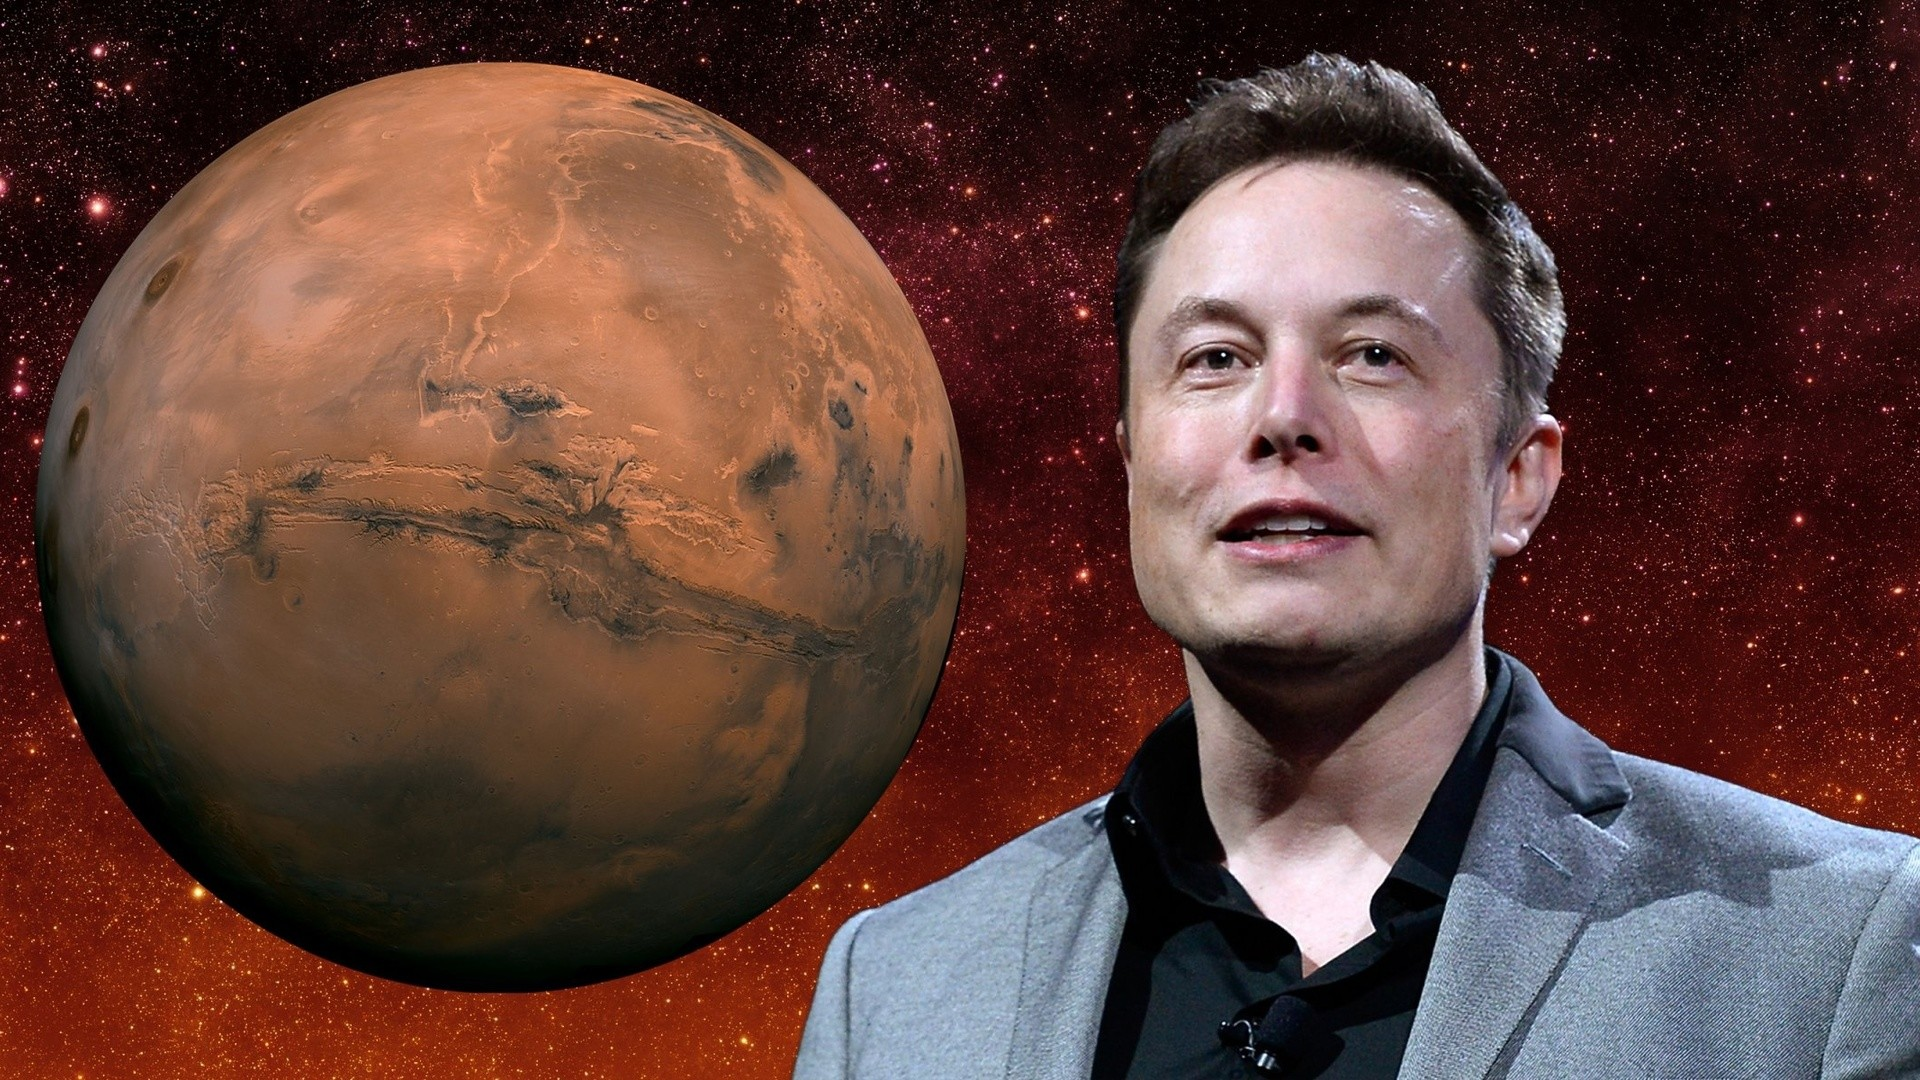 Elon Musk, Spacex, Ceo Of Spacex, Mars, Elonmusk, Photos Of Elon